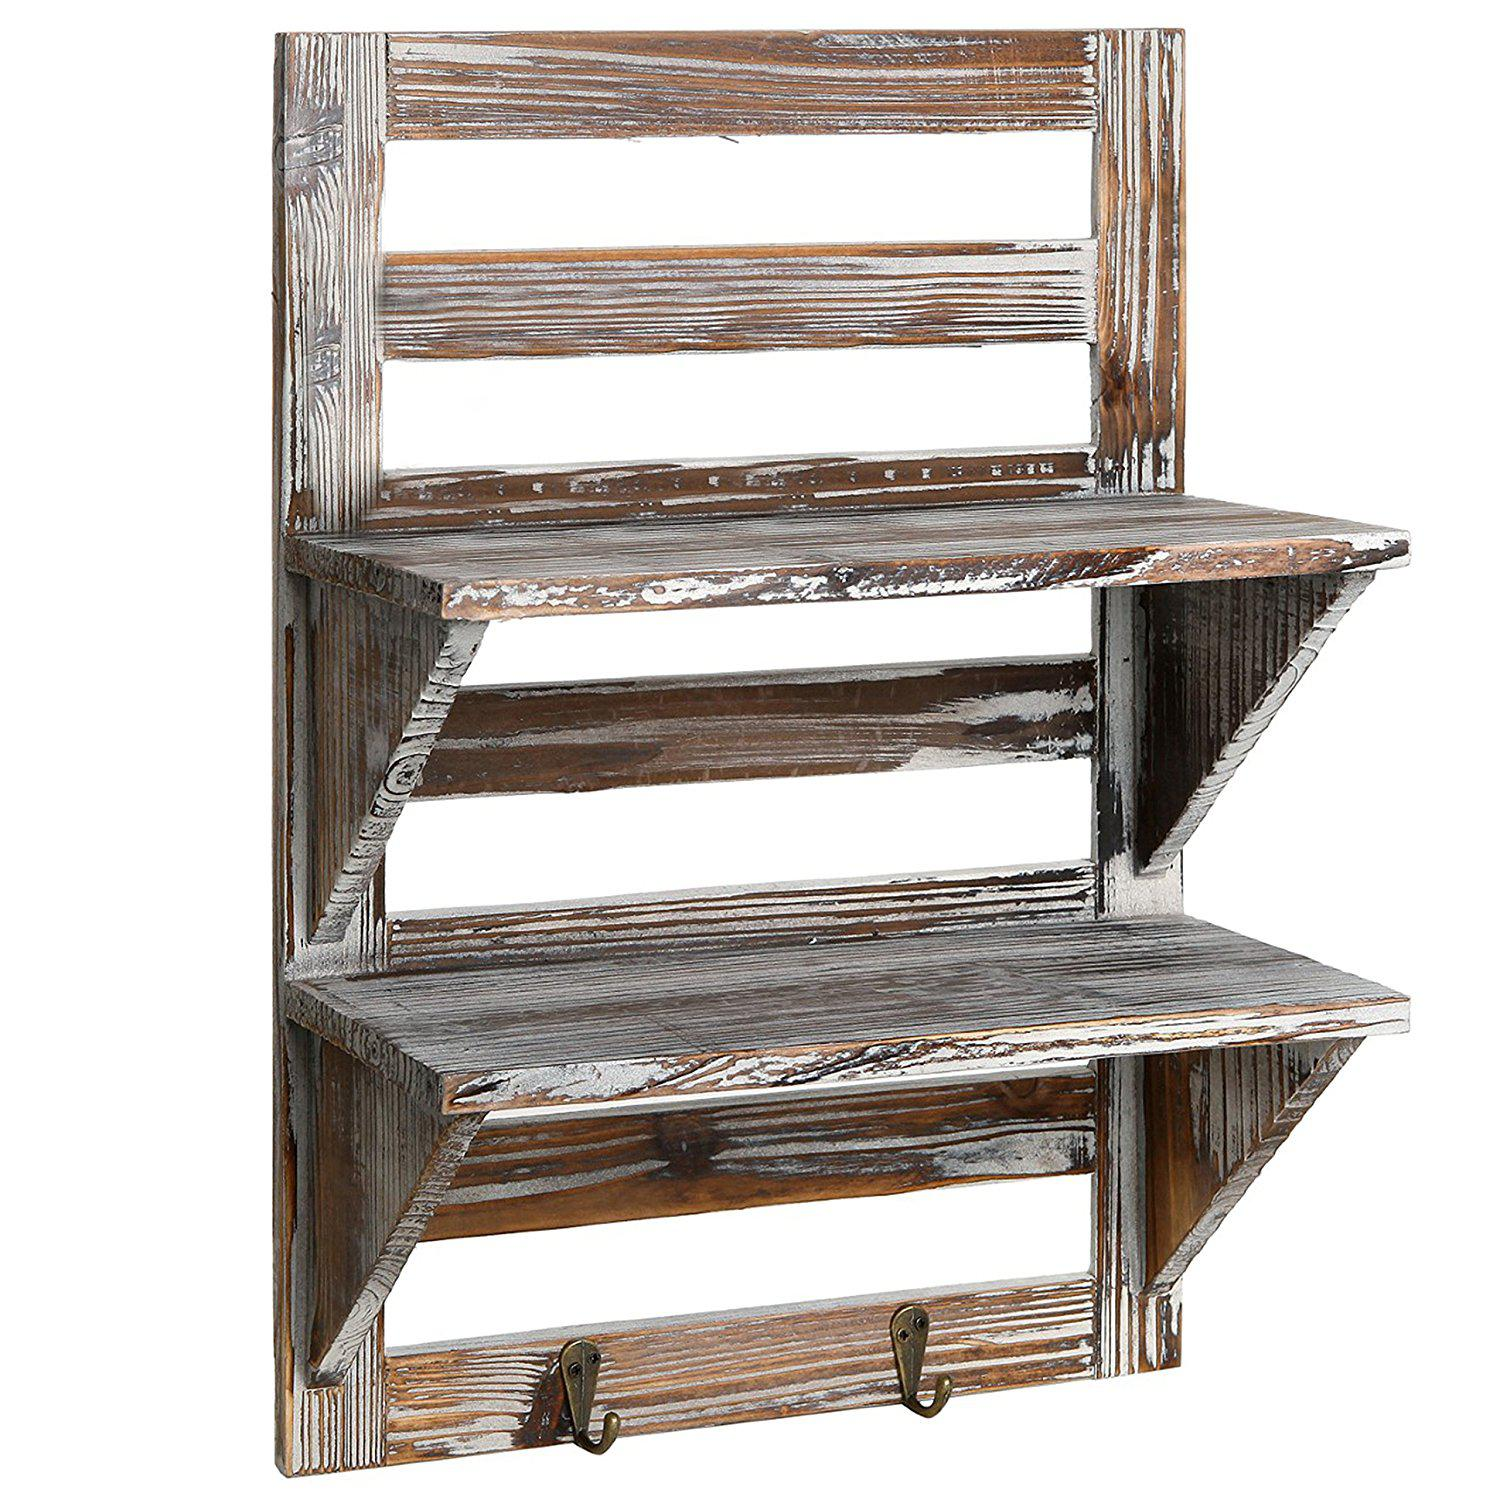 Mygift rustic wood wall mounted organizer shelves best